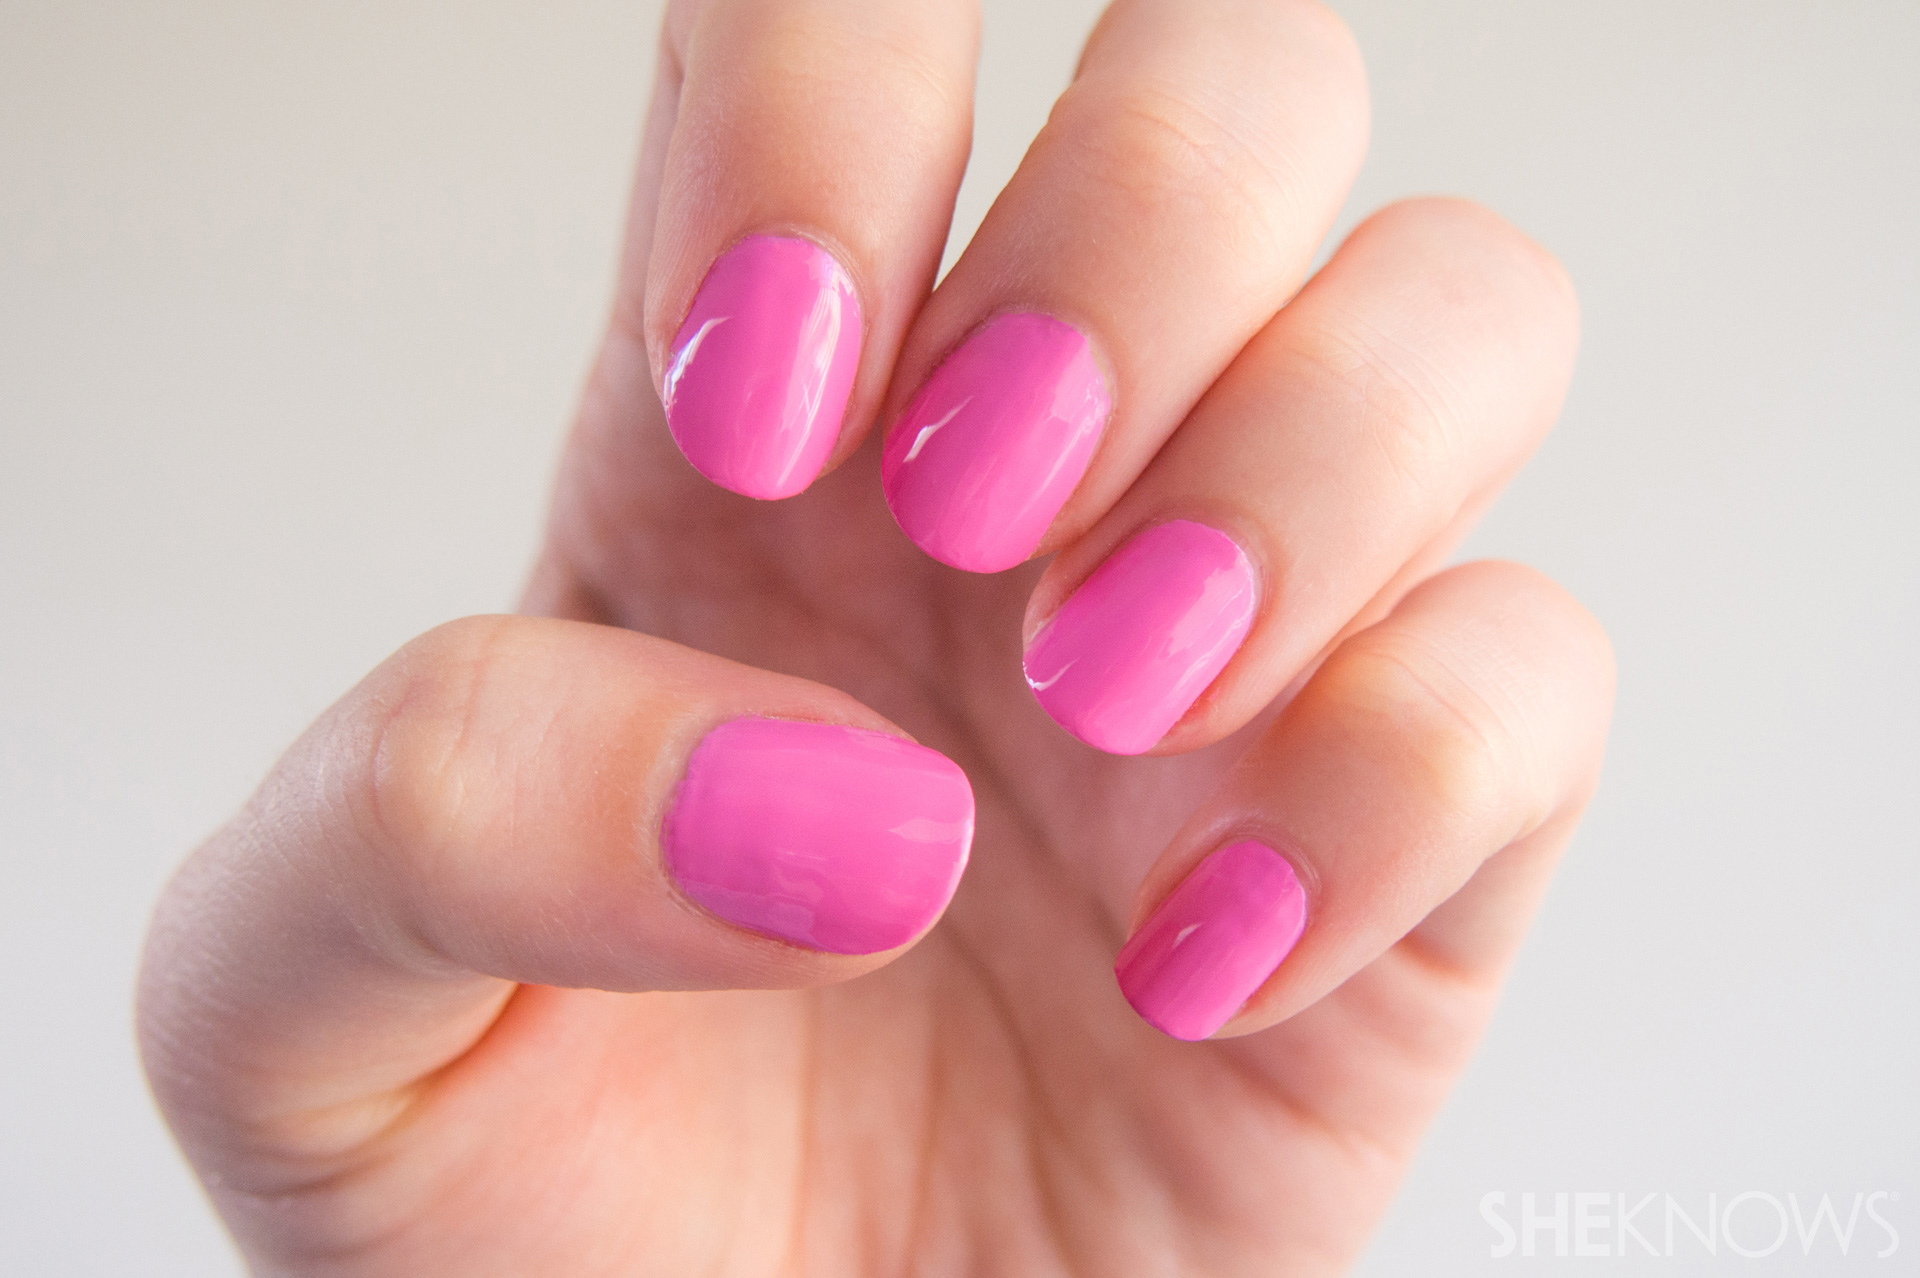 Nail design Pink camo print: Step 1: Begin with a pink base coat.